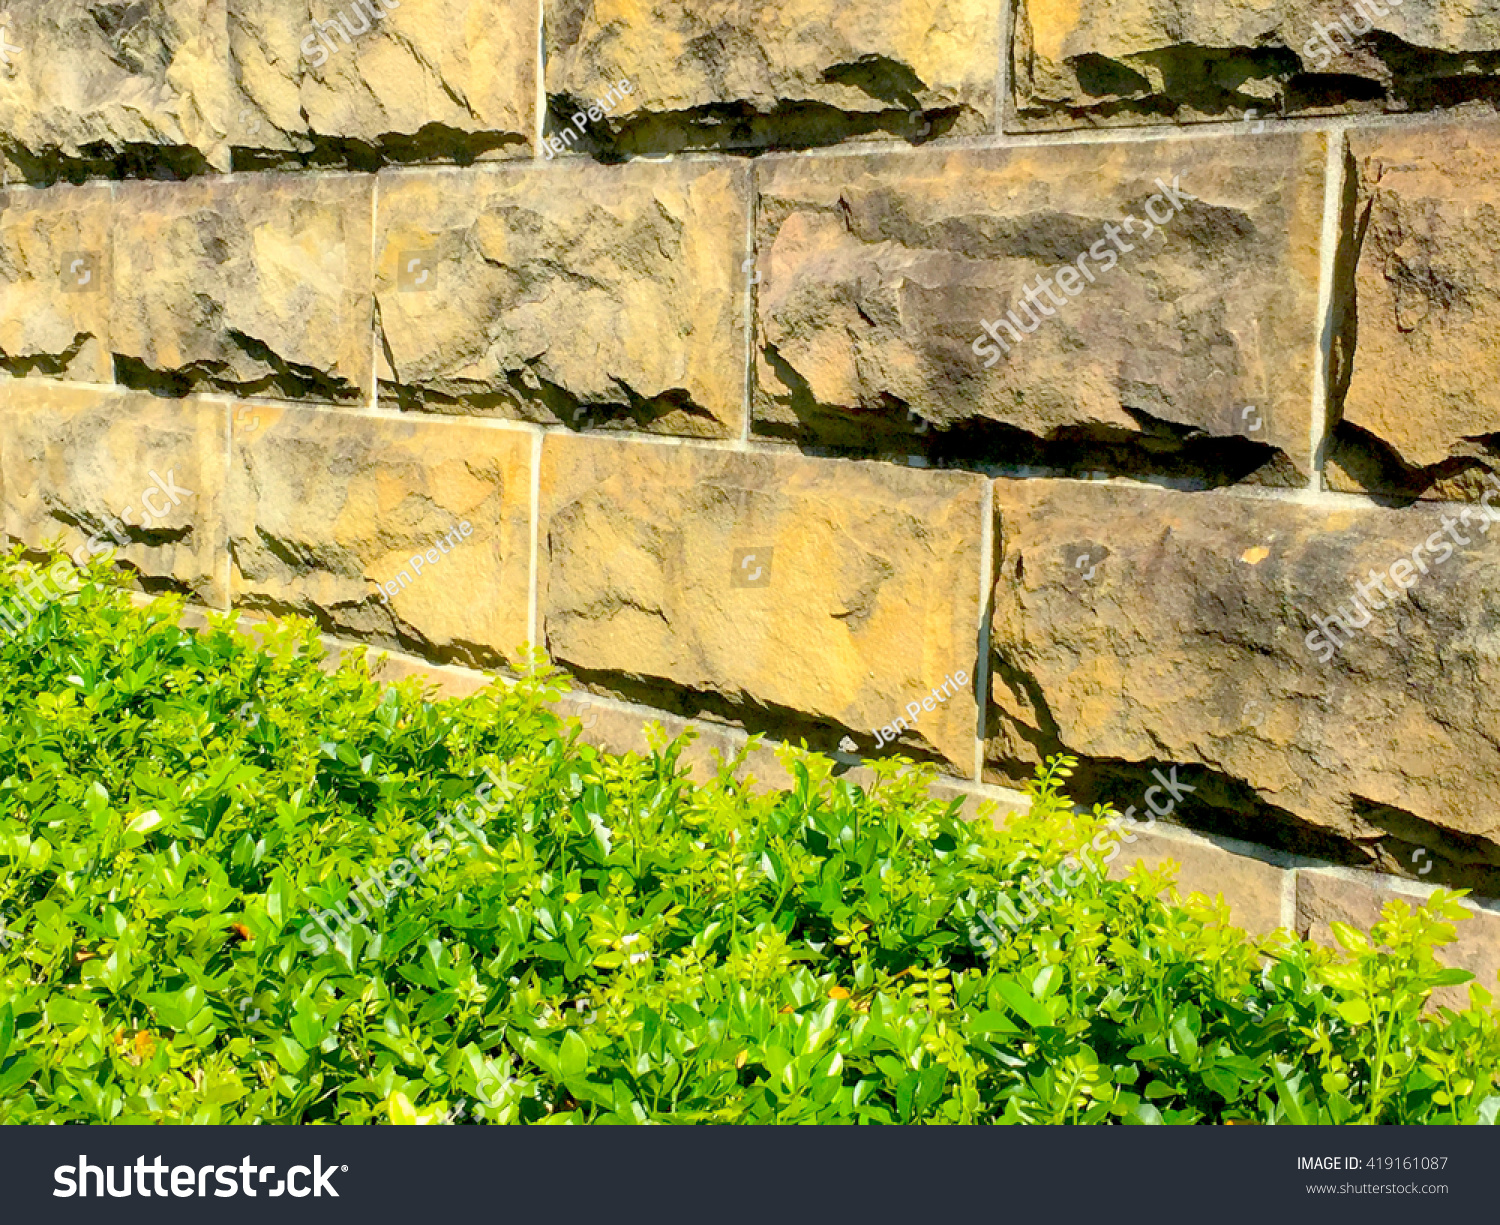 Abstract Landscaping Sandstone Retaining Wall Vignette Stock Photo ...